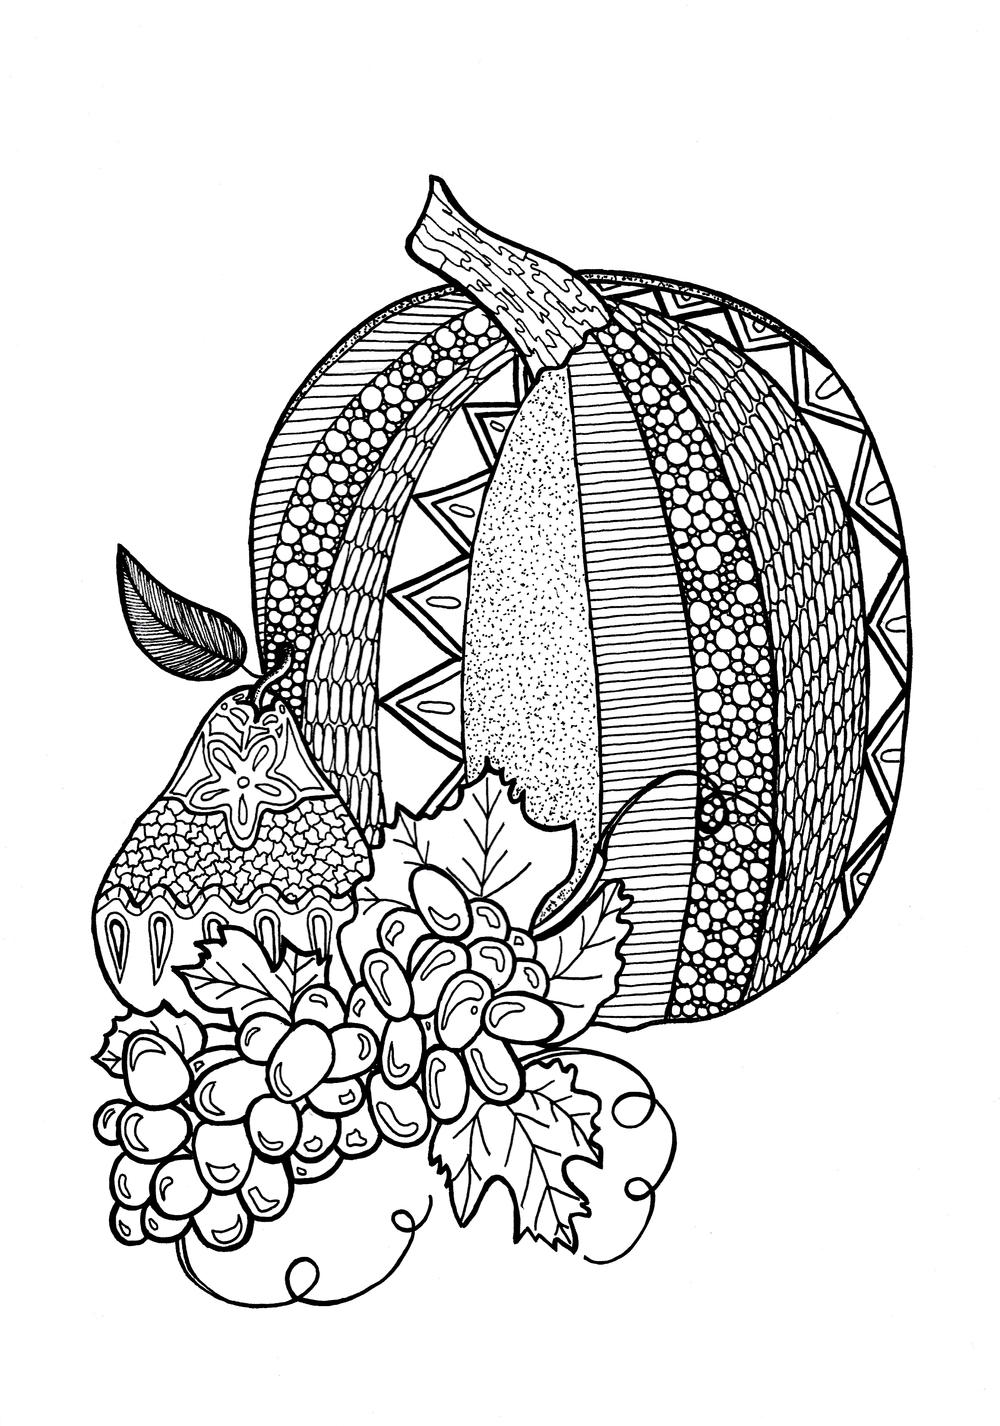 Textured Pumpkin Adult Coloring Page Allfreepapercrafts Com